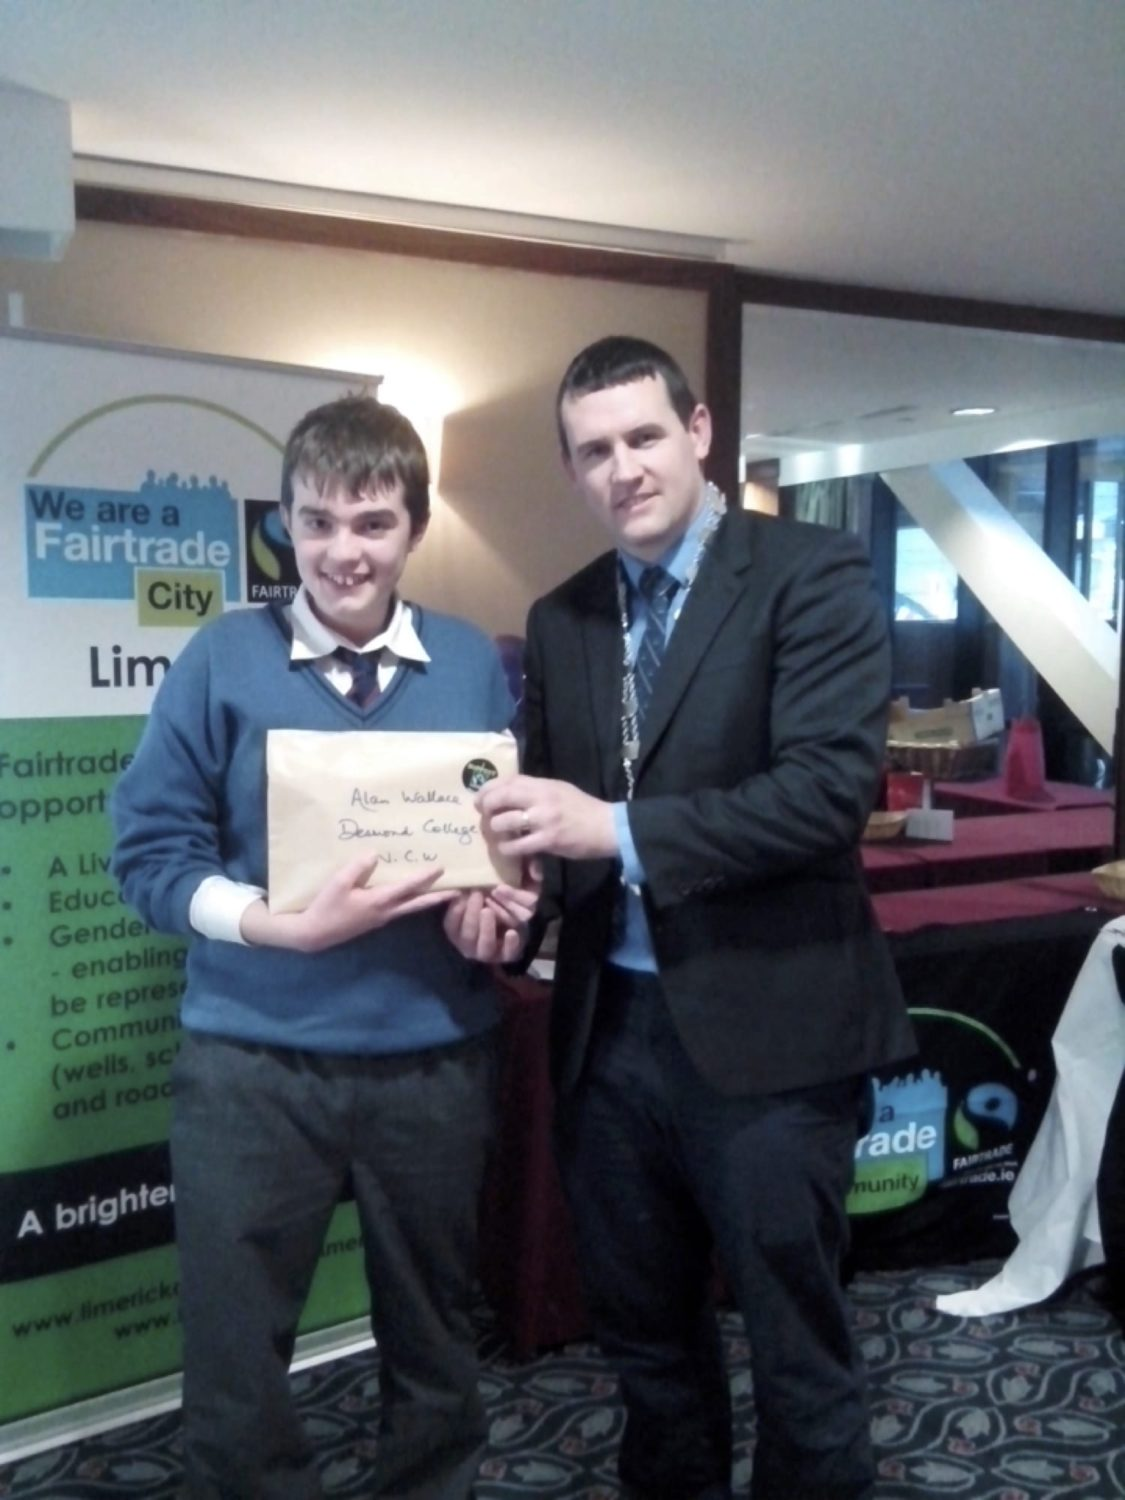 Nov 2016: Desmond College Student at the Fairtrade Christmas Card Art Competition Presentation Function in Limerick with Cllr. Frankie Daly